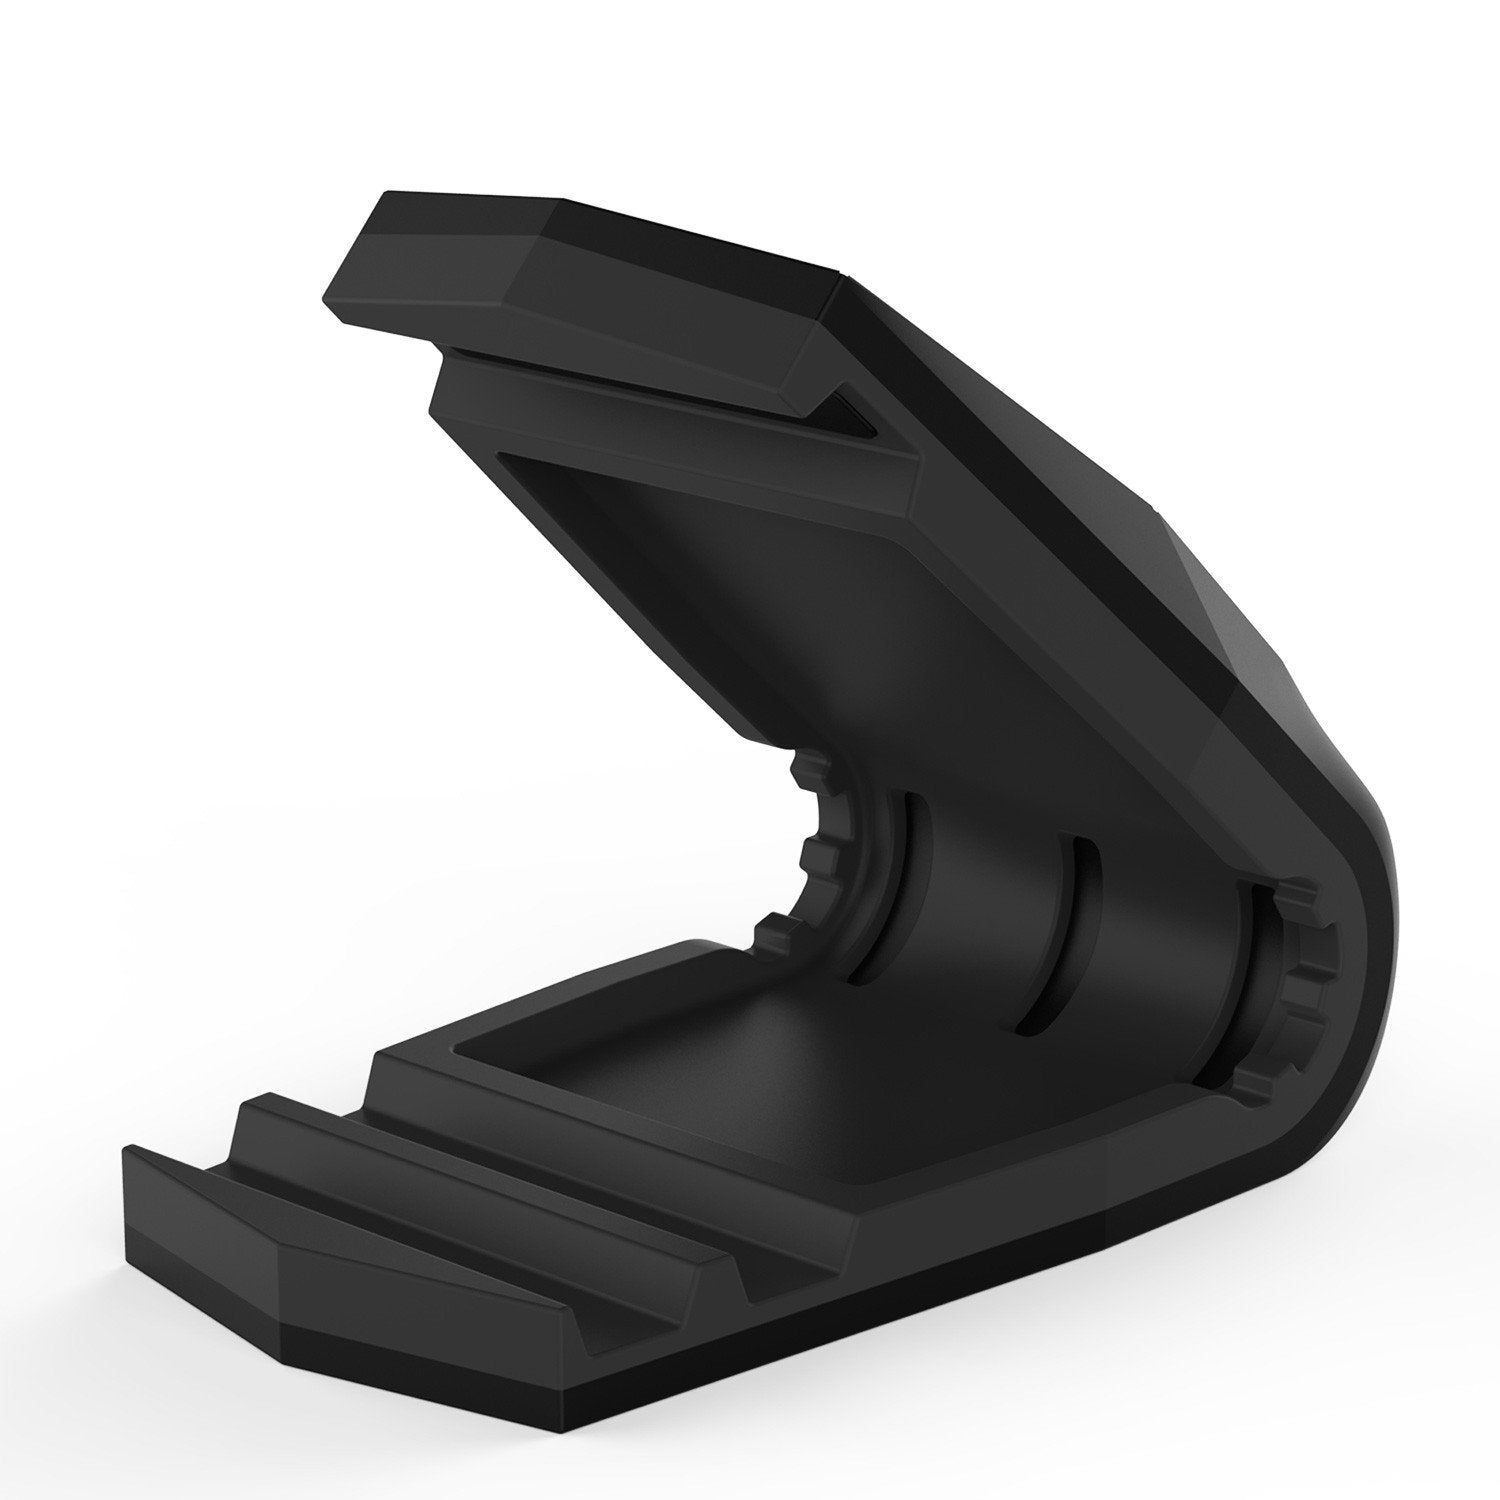 PUNKCASE Viper Car Phone Holder Black, Universal Dashboard Mount for all Smartphones, Low Profile & Sleek Design, One Hand Operation - PunkCase NZ